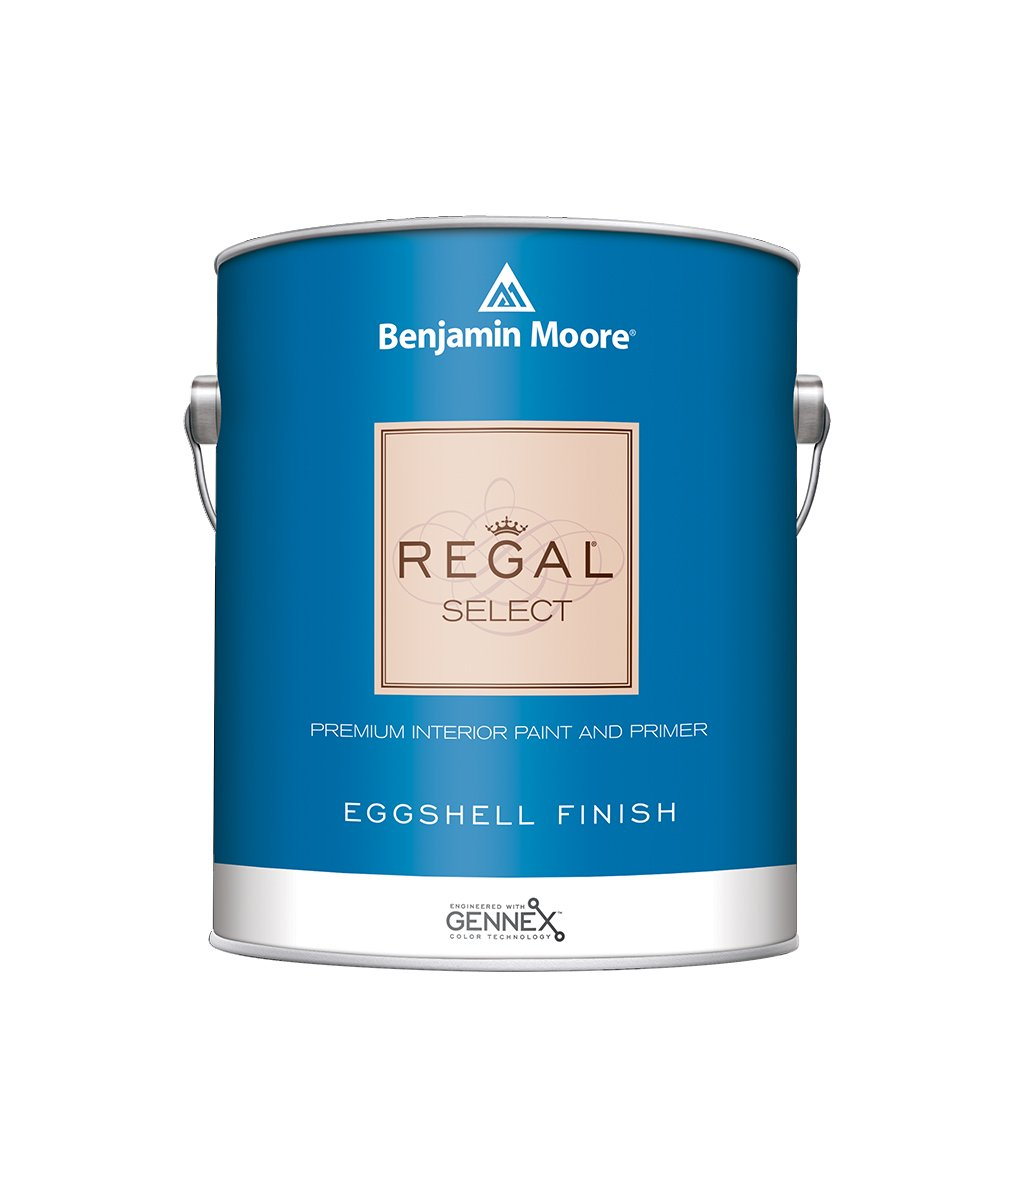 Benjamin Moore Regal Select Eggshell Paint available at Clement's Paint.